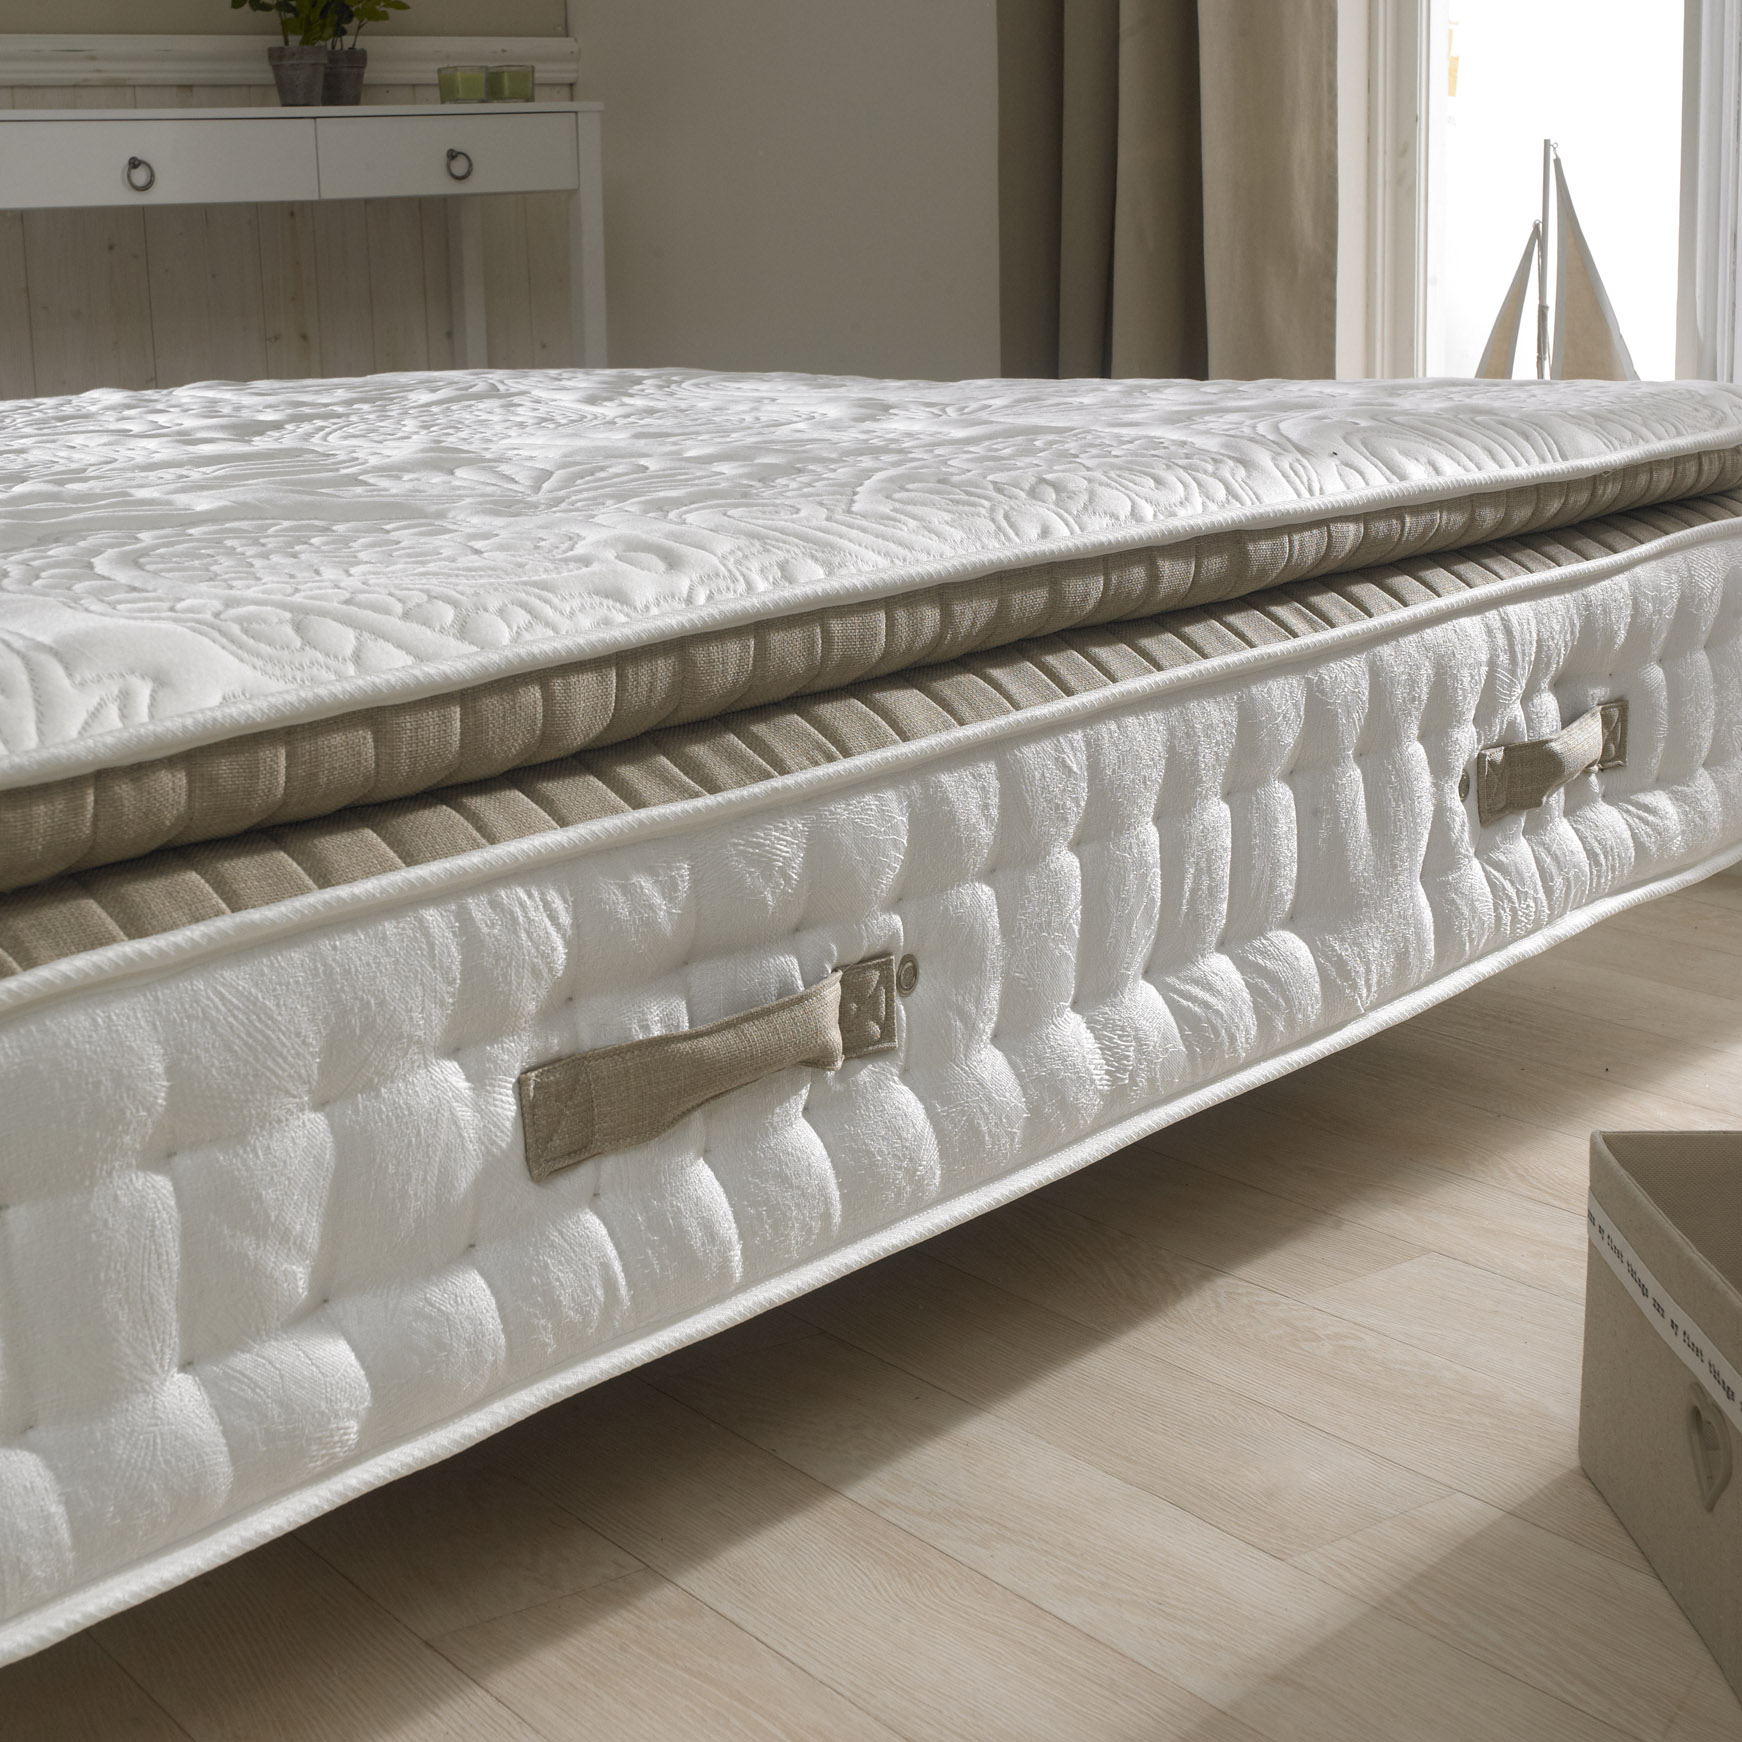 pillow top sofa bed mattress pad handy living courtney happy beds windsor 3000 pillowtop orthopaedic